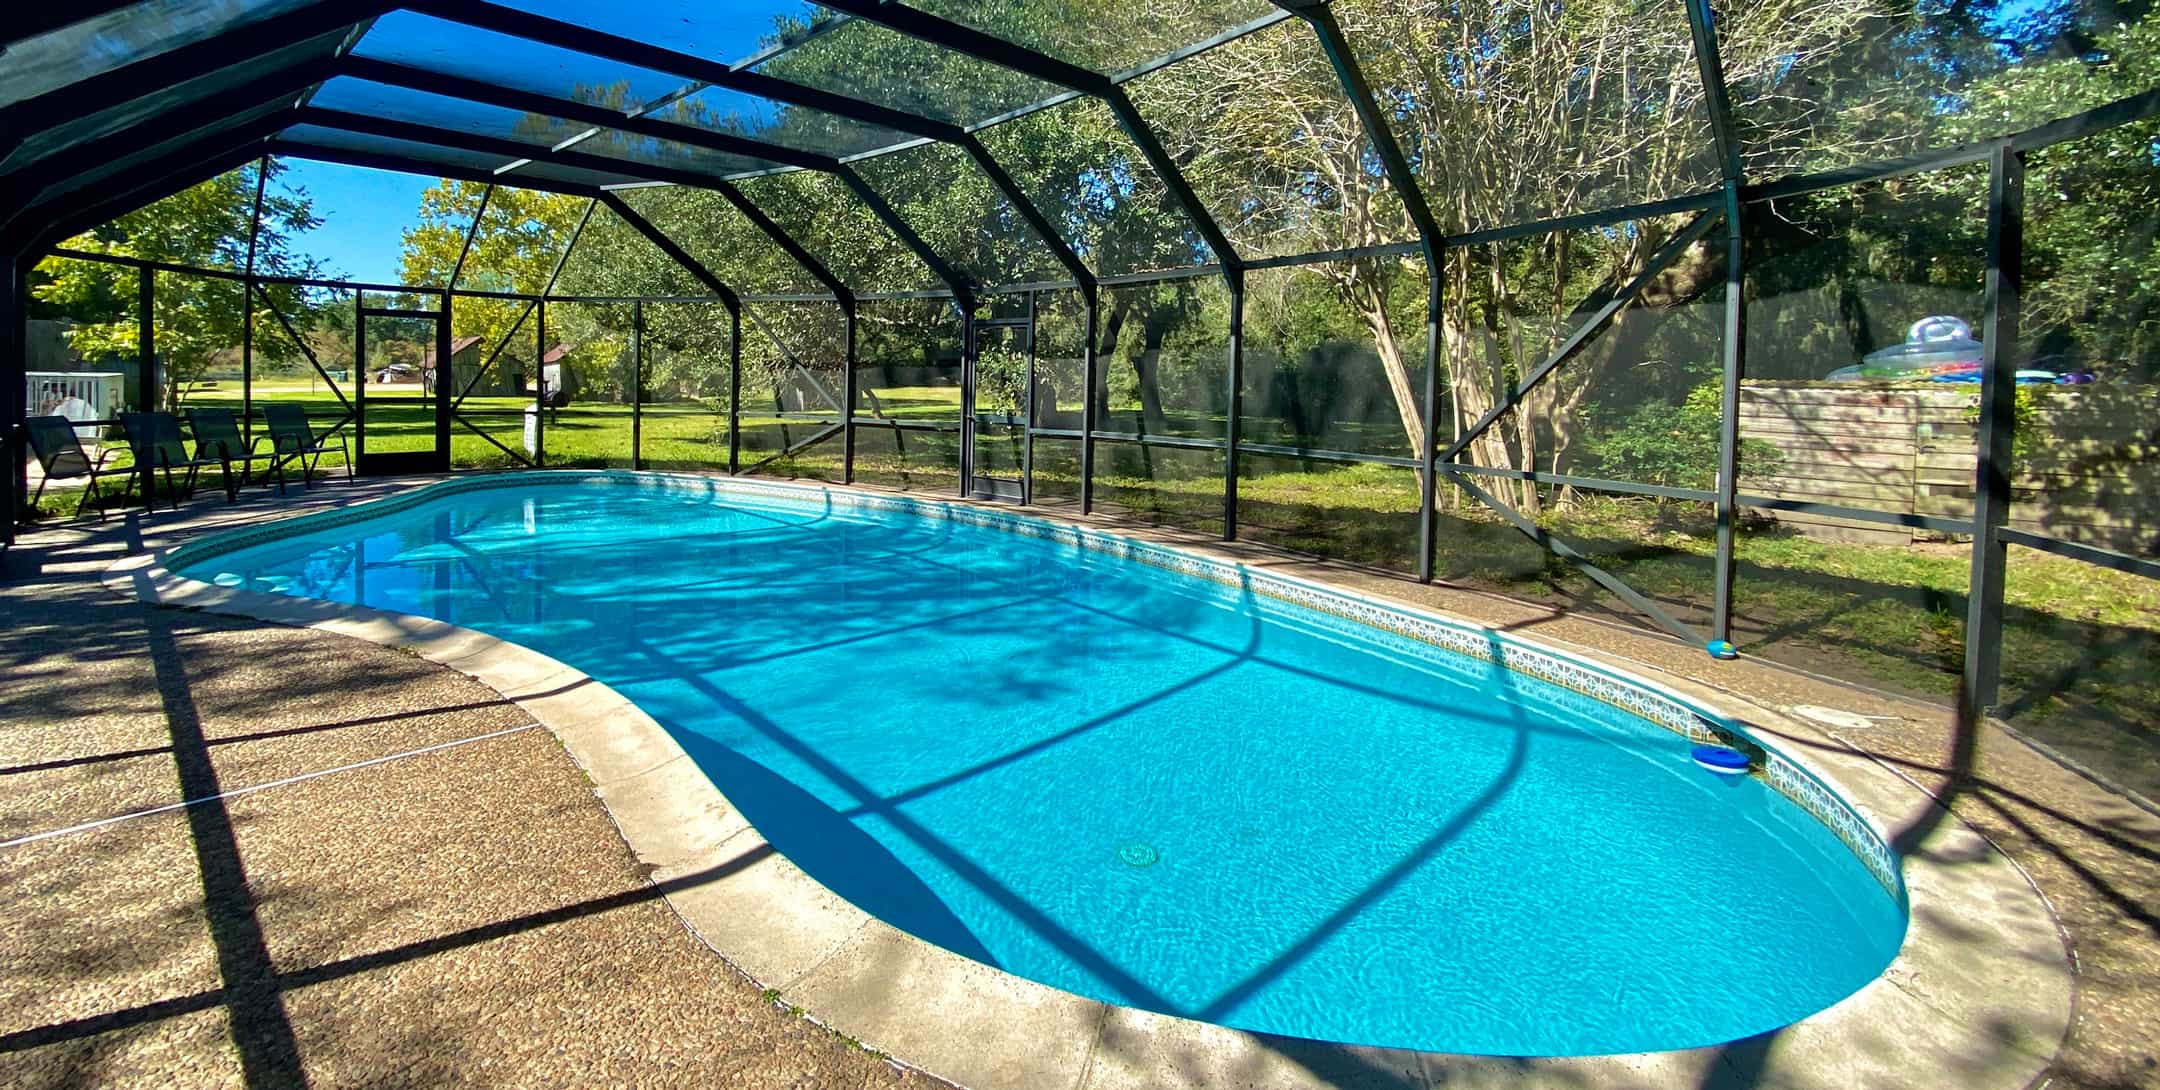 Cool down on a hot Texas Summer day in your private enclosed pool